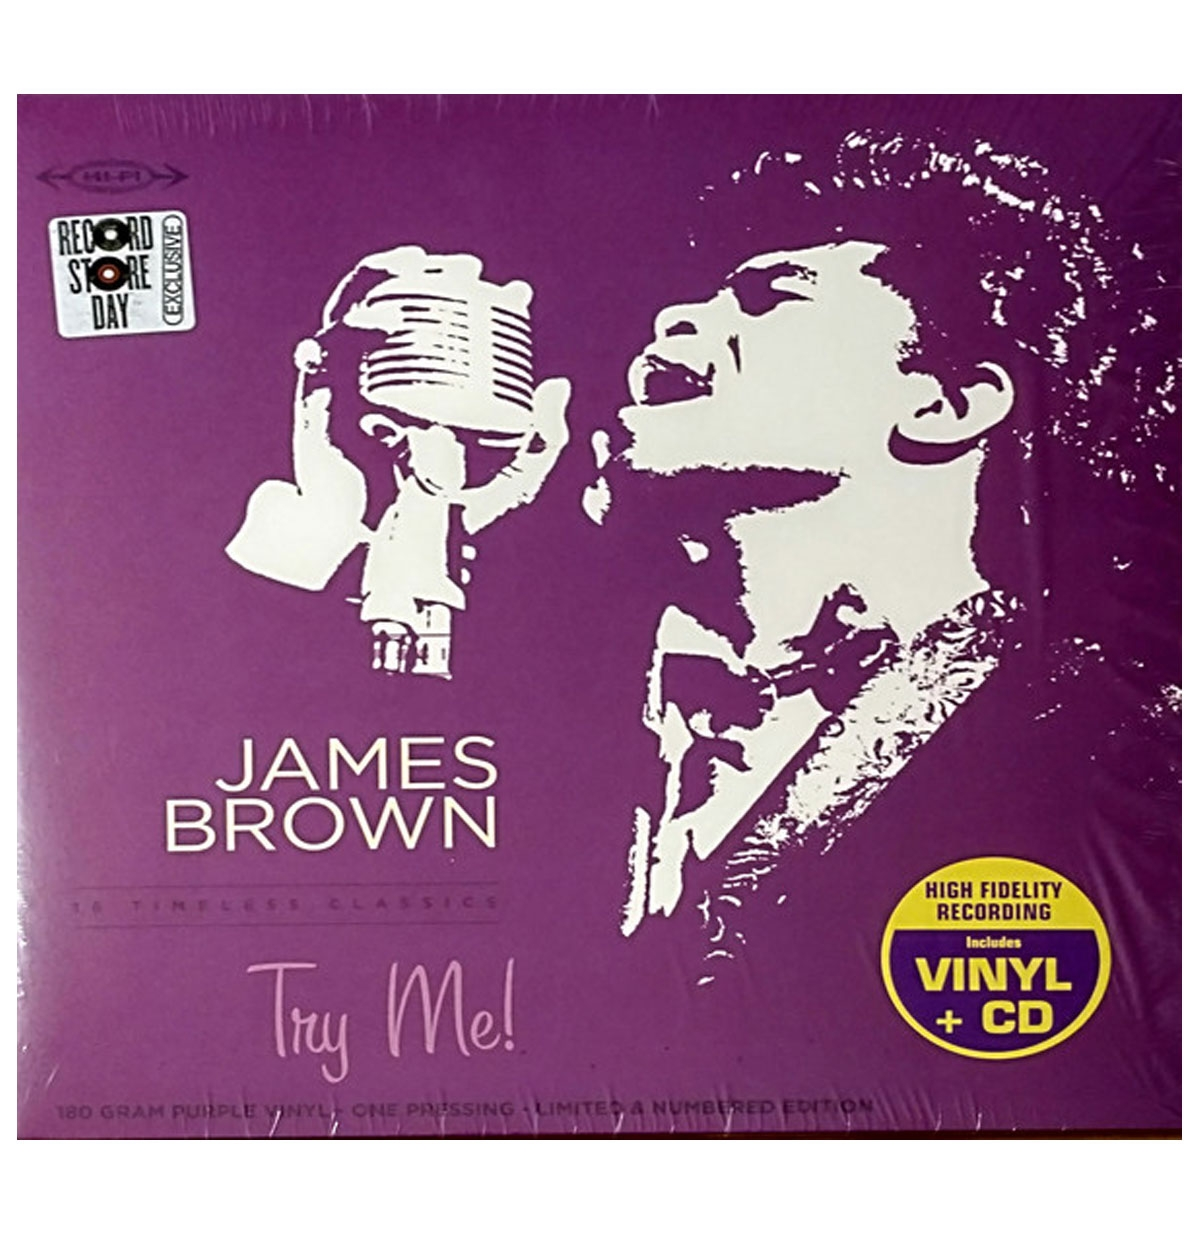 James Brown - Try Me! LP Limited Edition